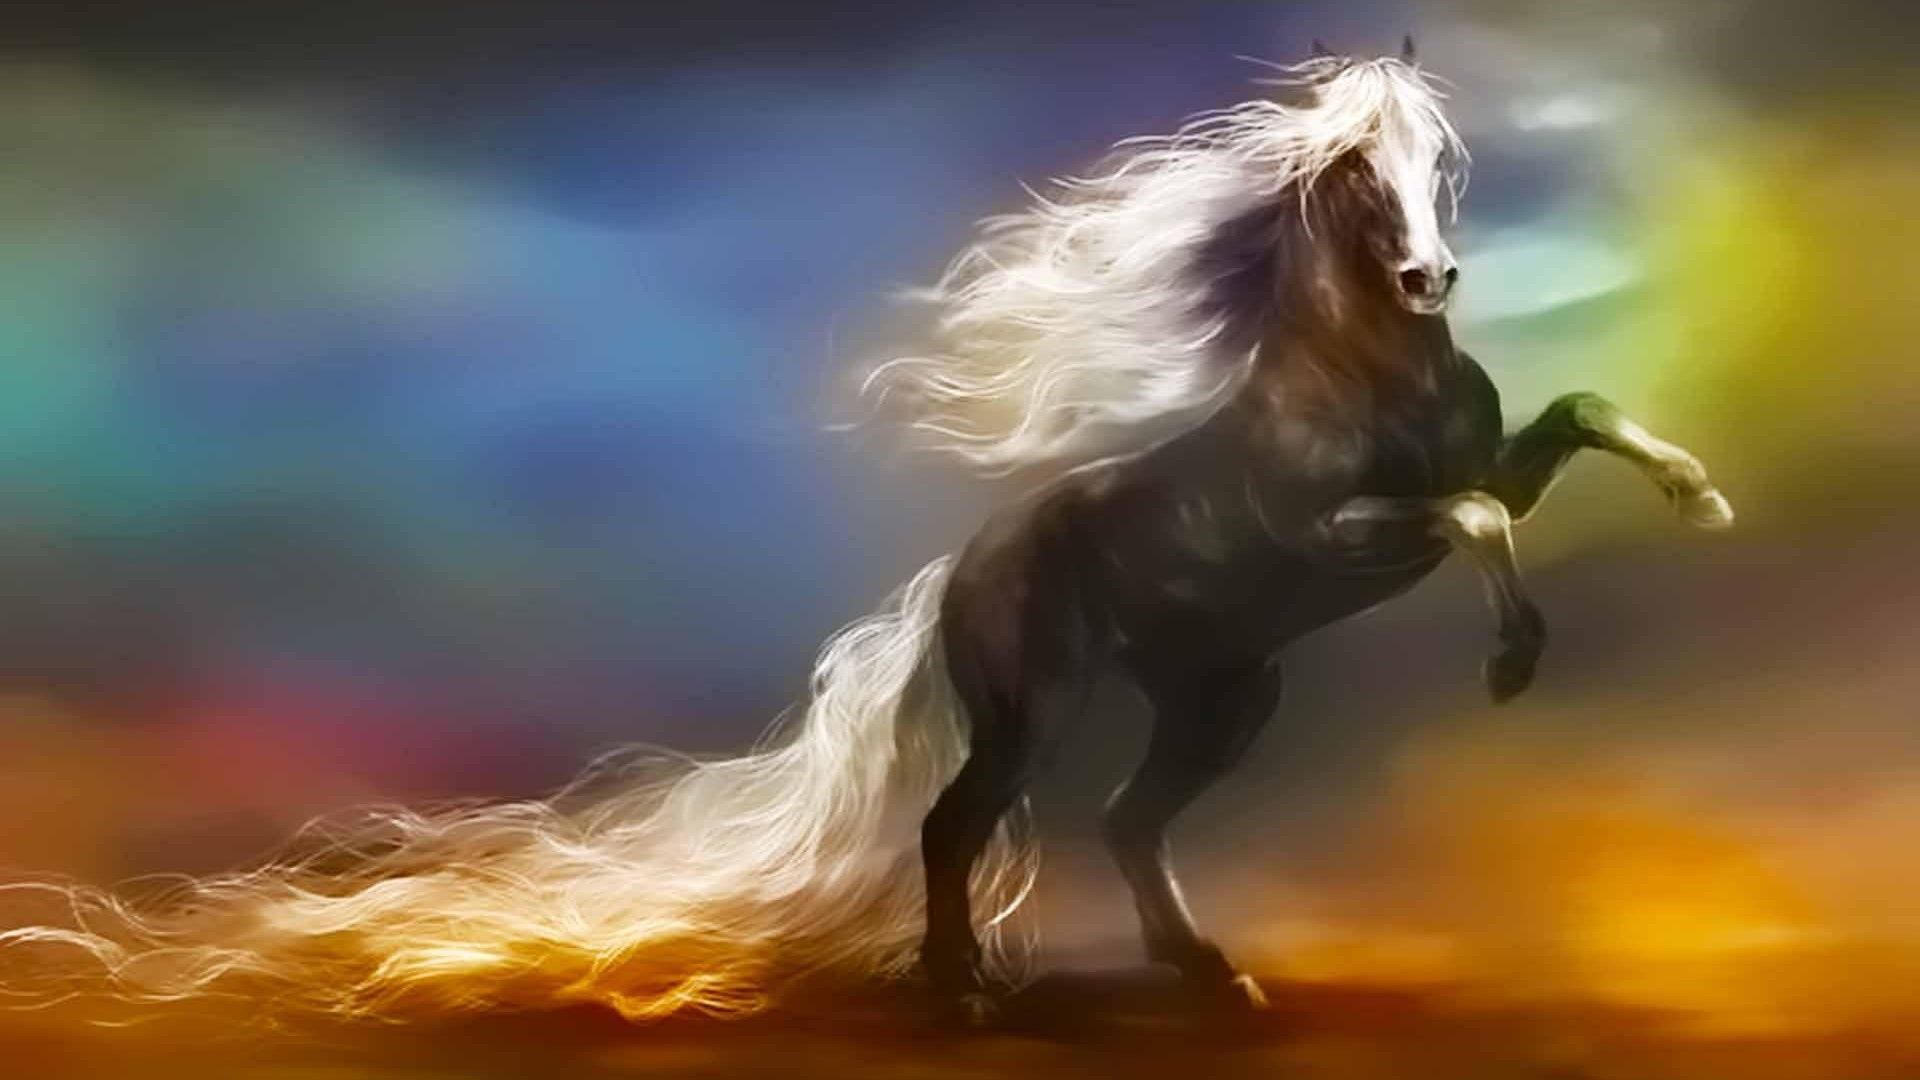 Horse Fantasy Wallpaper